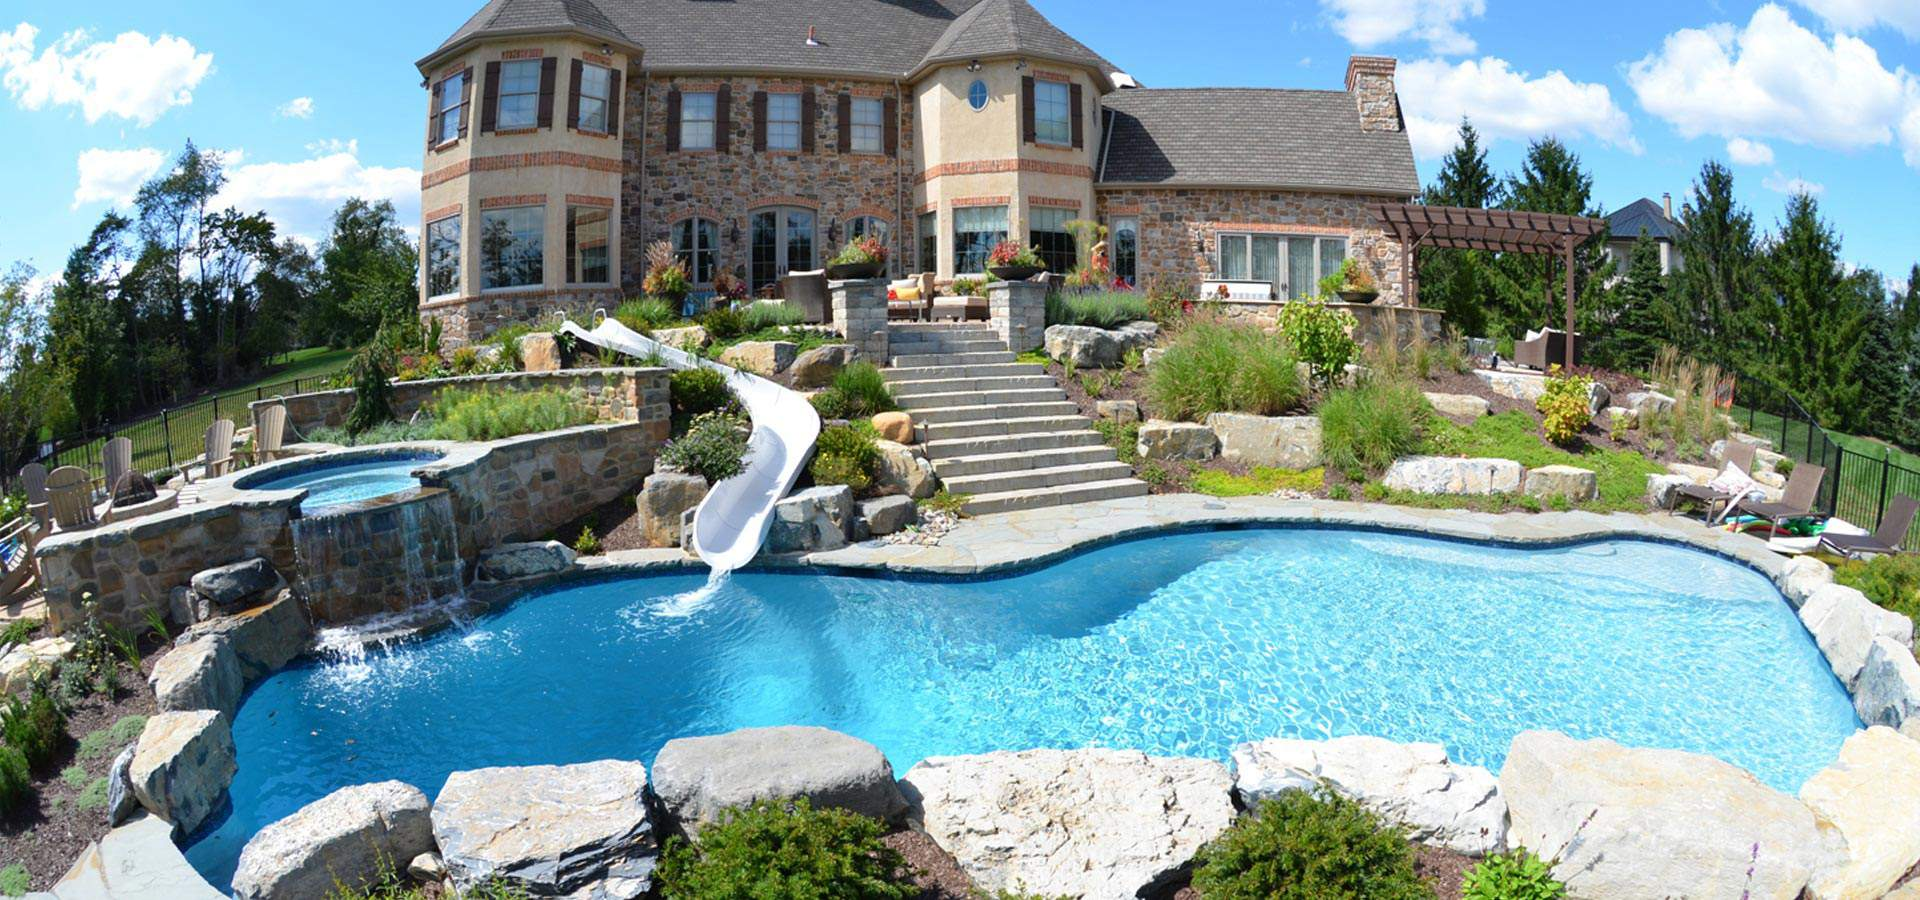 1 pool builder in lehigh valley pa best inground pools. Black Bedroom Furniture Sets. Home Design Ideas